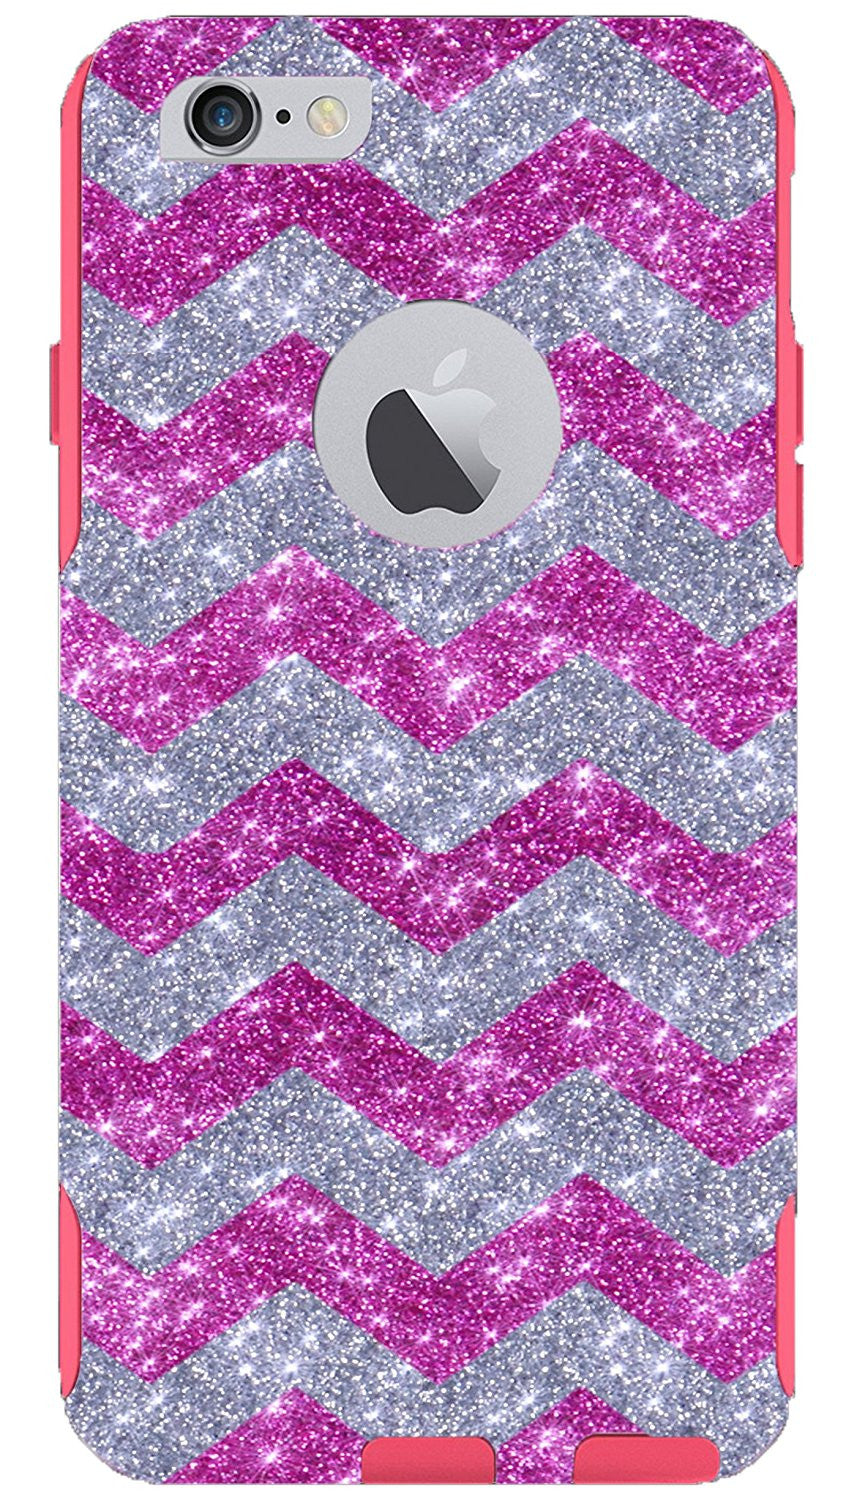 purchase cheap 7c871 f157a OtterBox iPhone 6 Plus Case - OtterBox Commuter Series Custom Glitter Case  for iPhone 6 Plus, Retail Packaging - Silver Small Chevron Raspberry/Pink  ...